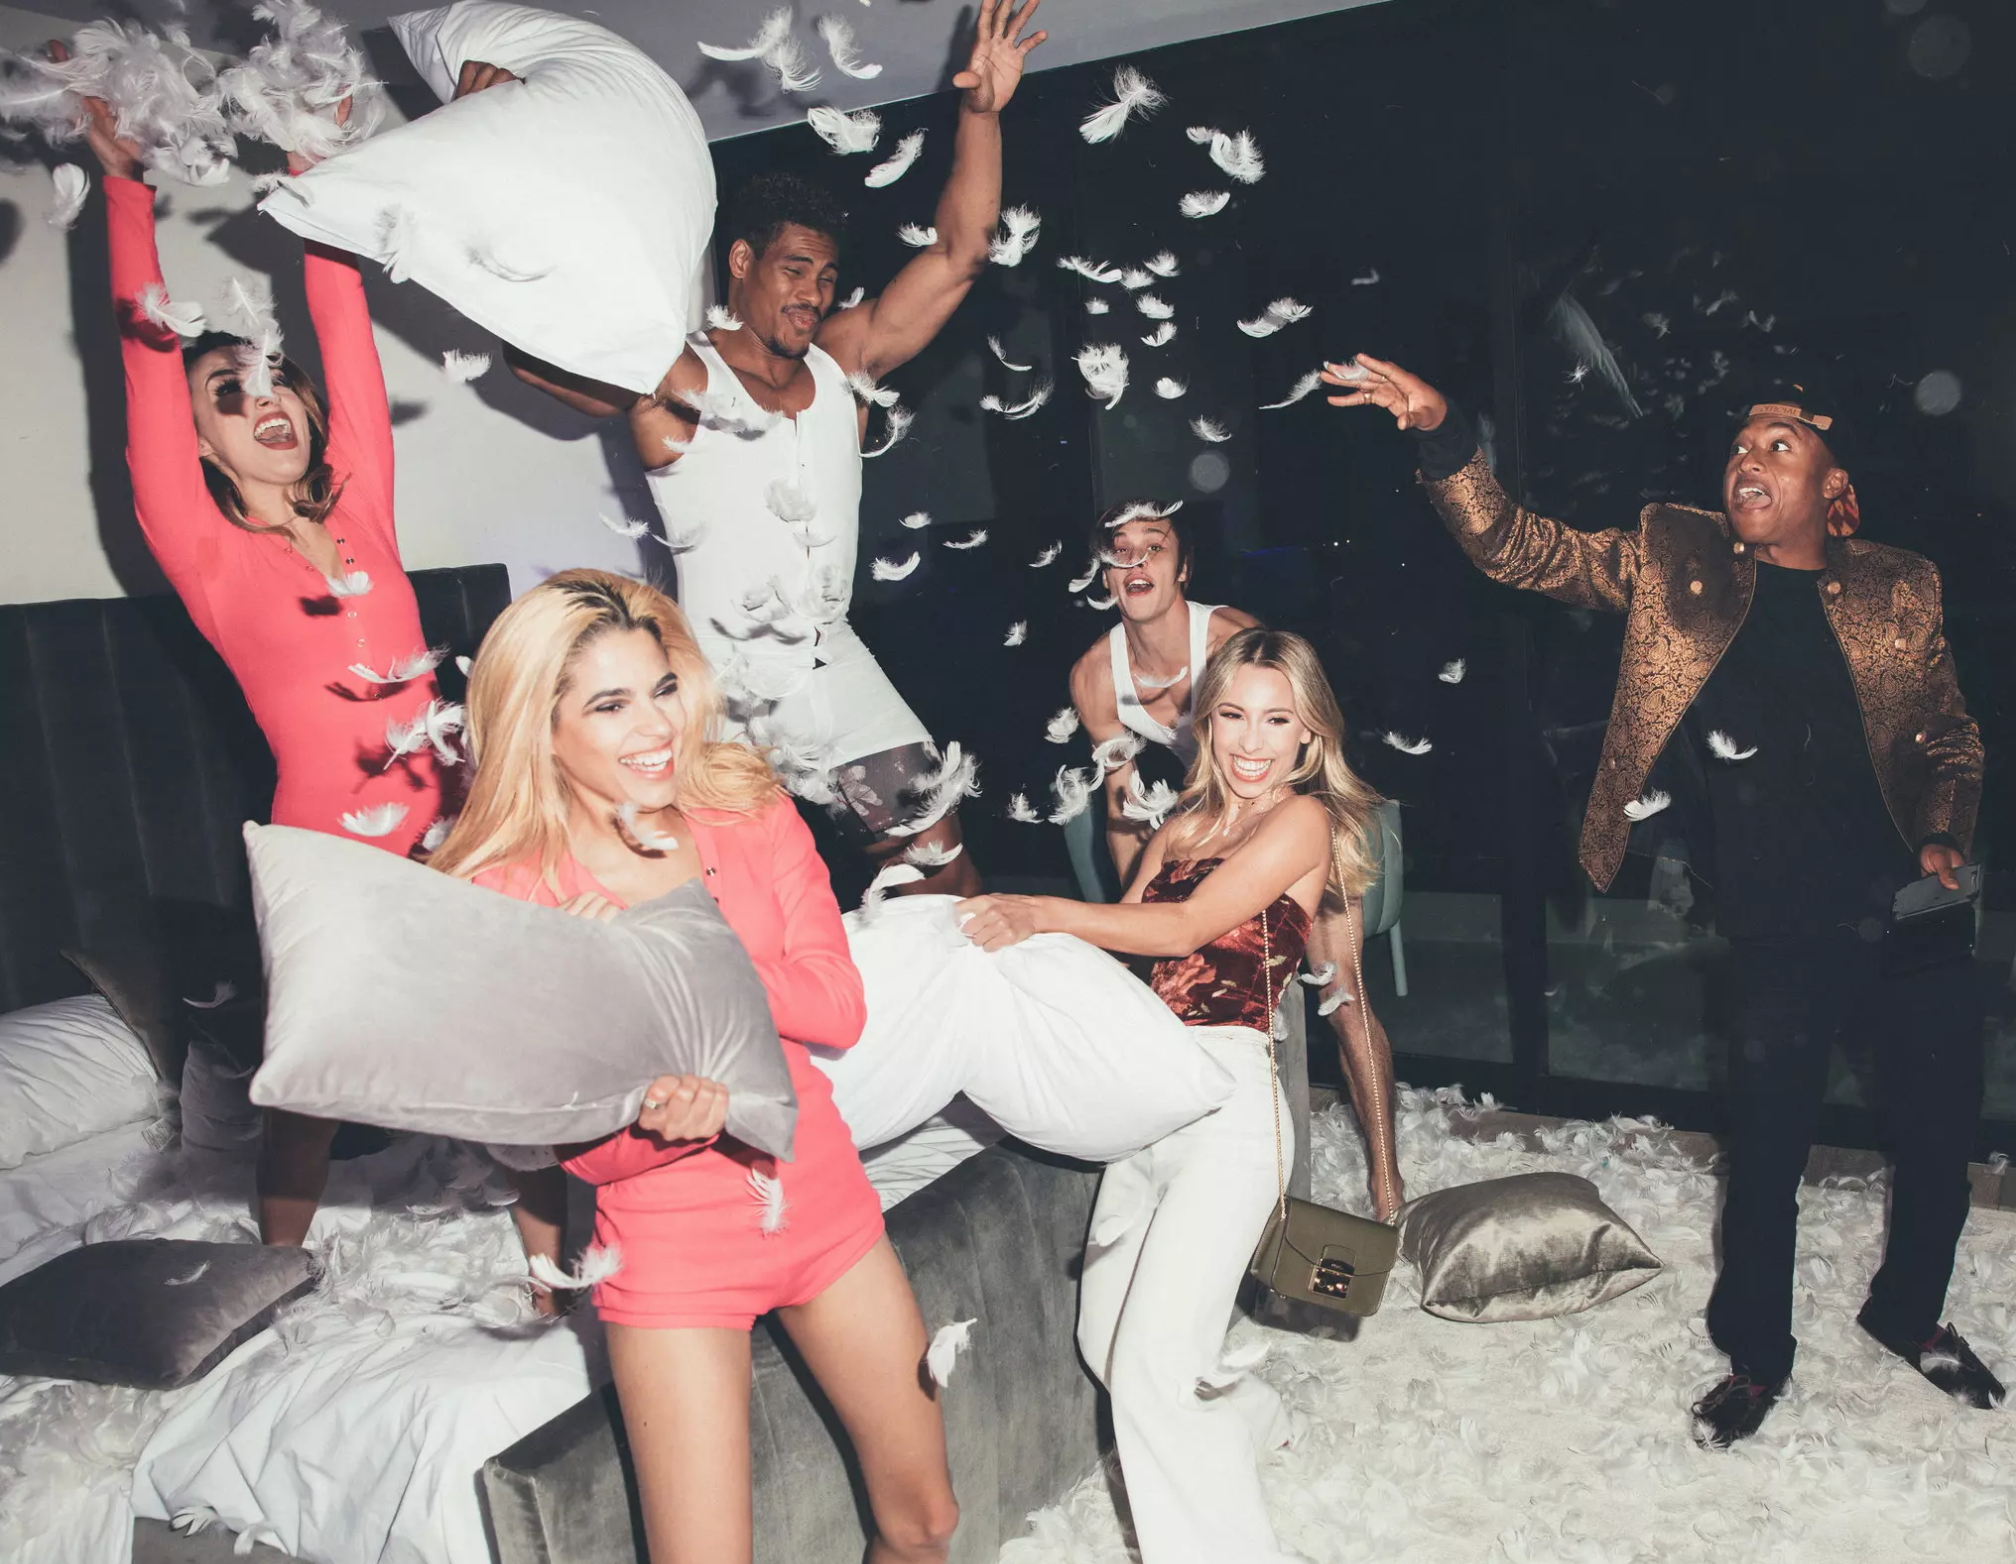 The Instagram influencer Ayla Woodruff, center, and Adrew Seally, right, get into a pillow fight with models. At this open house, setups were created to encourage social media posting.  Photo Credits: Adam Amengual for The New York Times